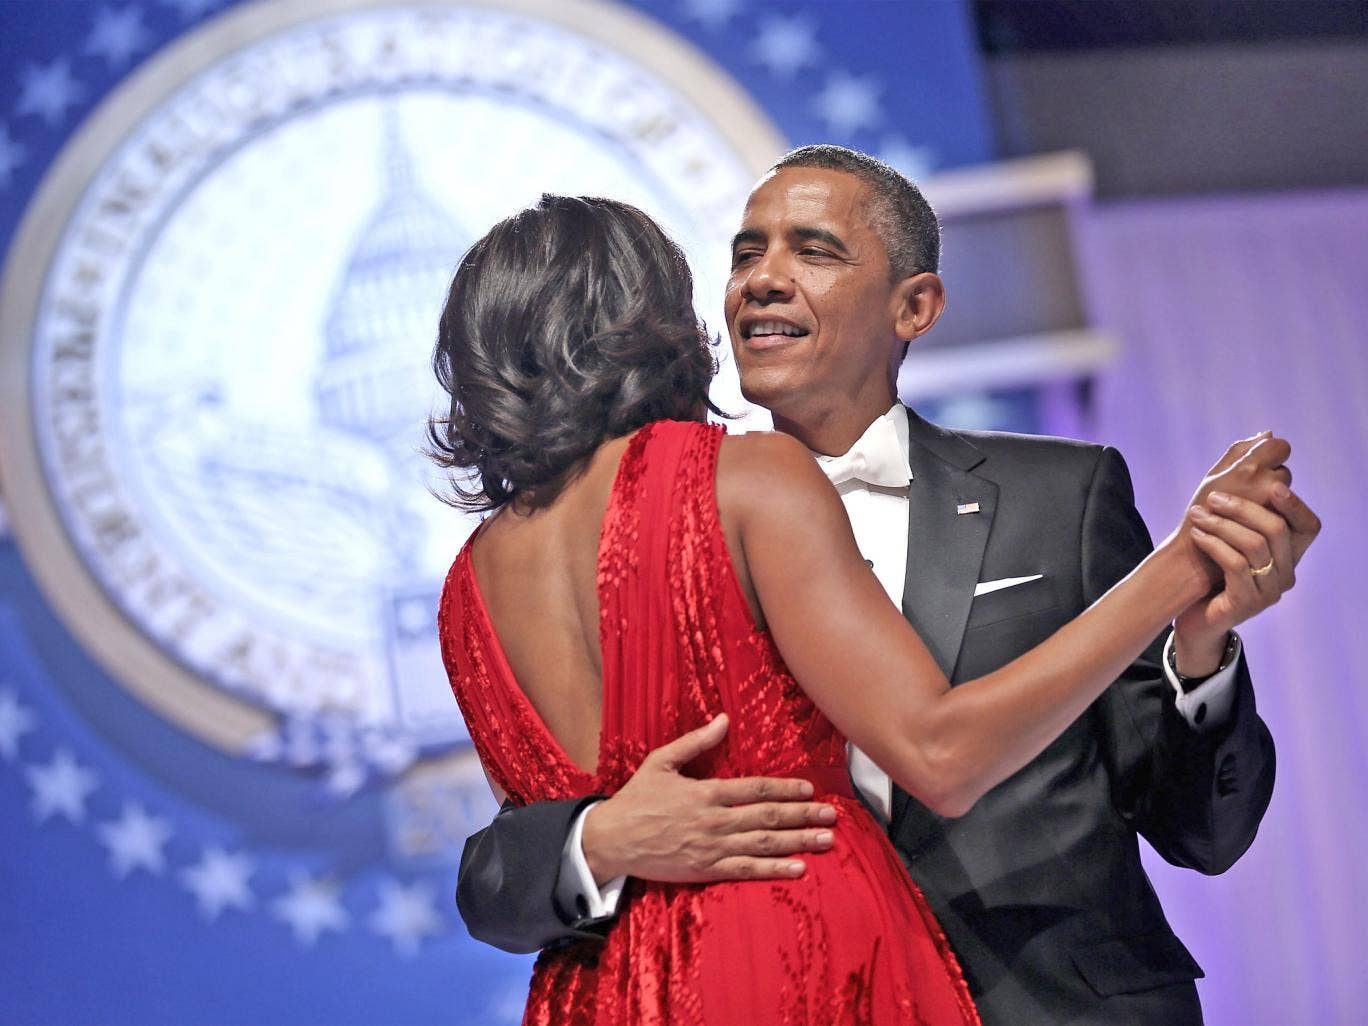 Barack and Michelle Obama dance at the Inaugural Ball in Washington